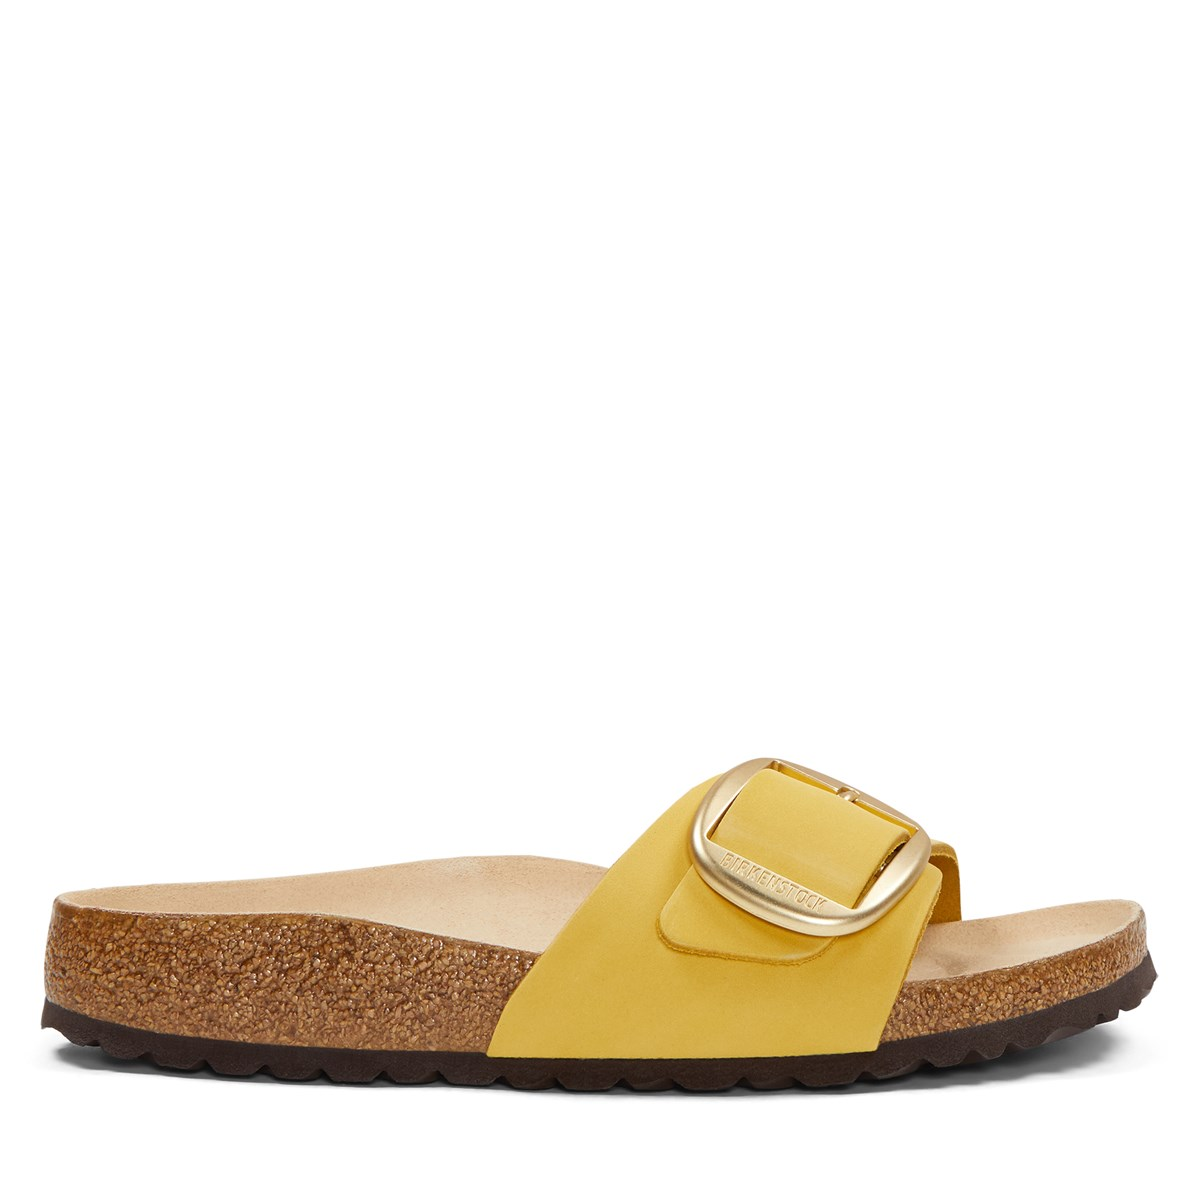 Women's Madrid Buckle Sandals in Yellow